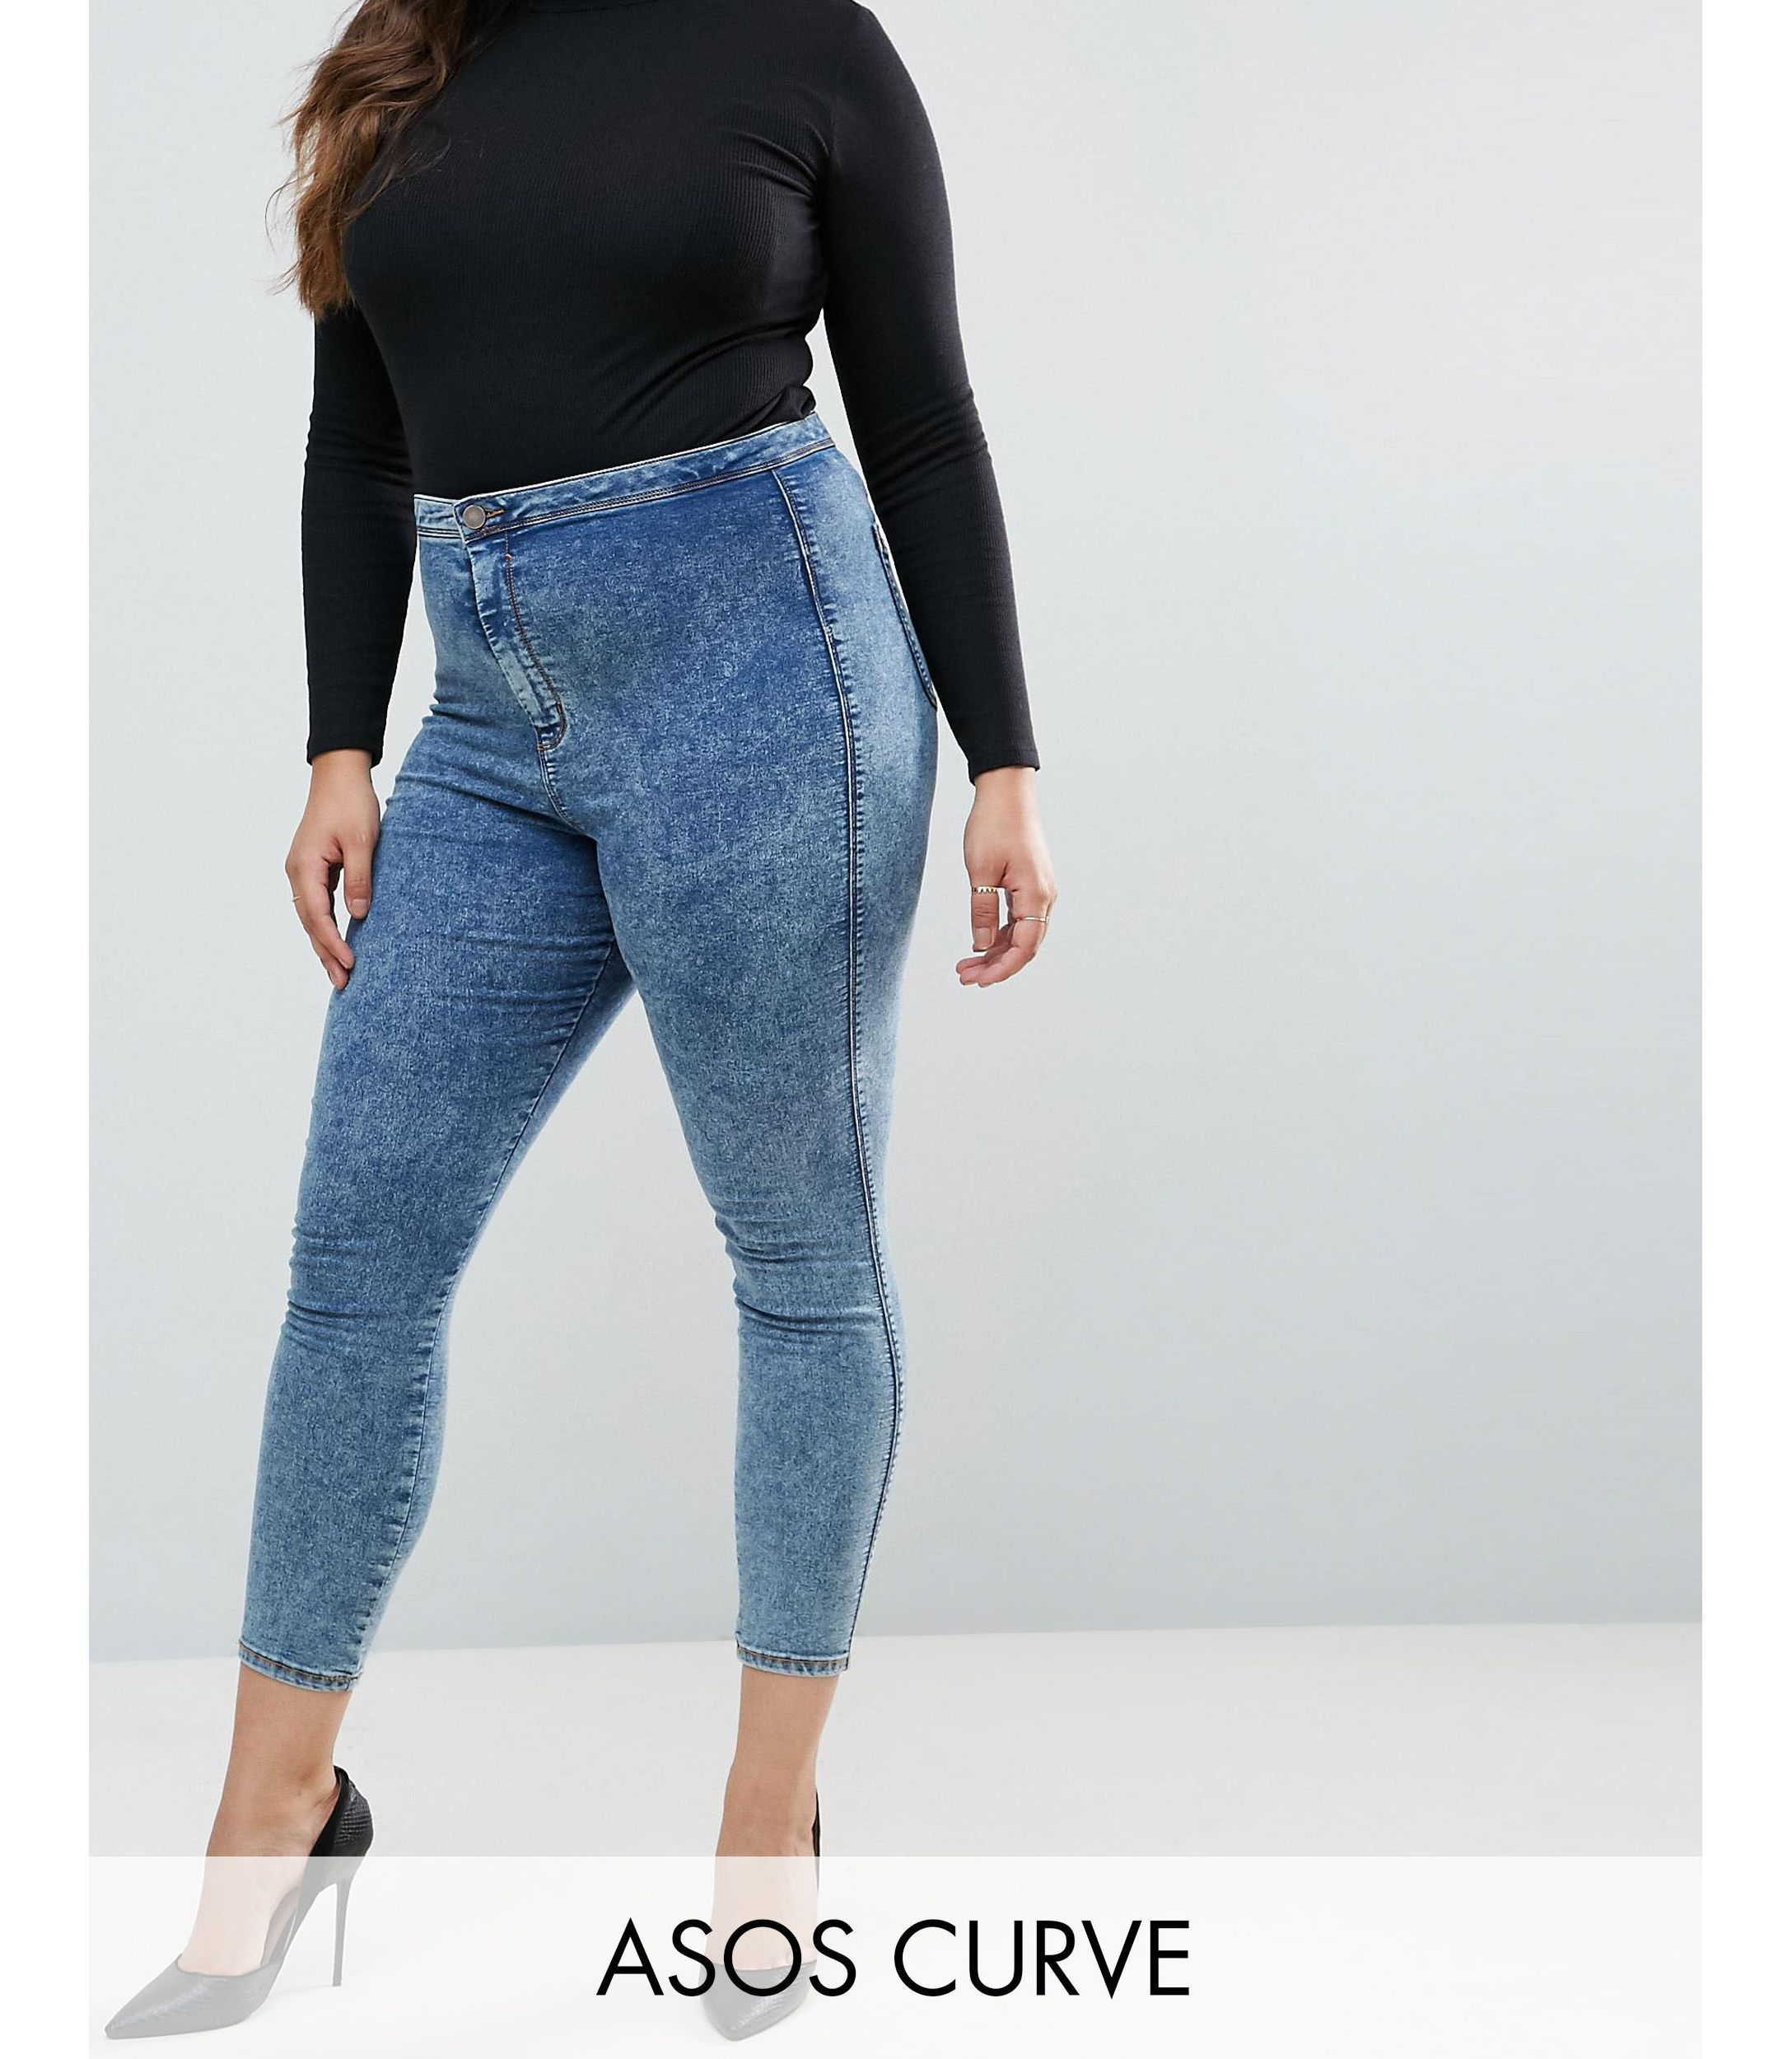 ★ASOS★ CURVE RIVINGTON High Waist デニム Jeggings  Rumer